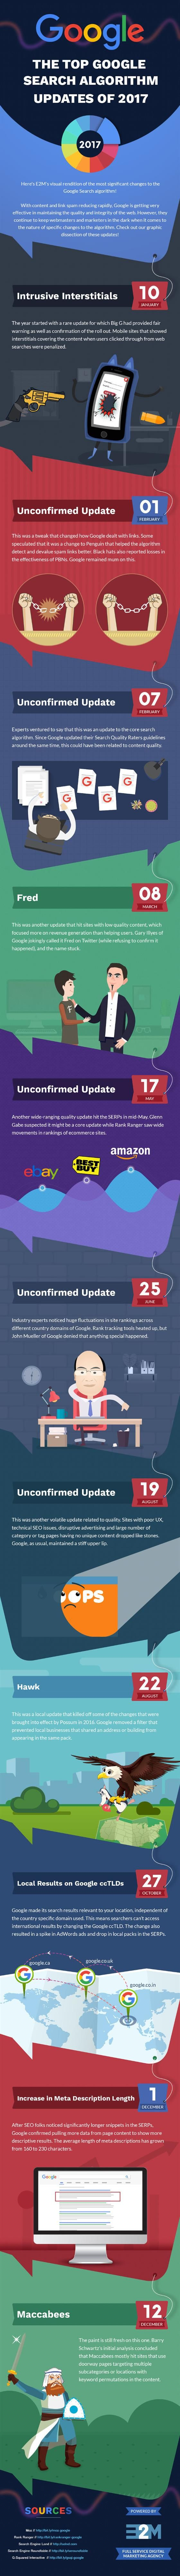 Top 11 Google Search Algorithm Updates of 2017 | Infographic